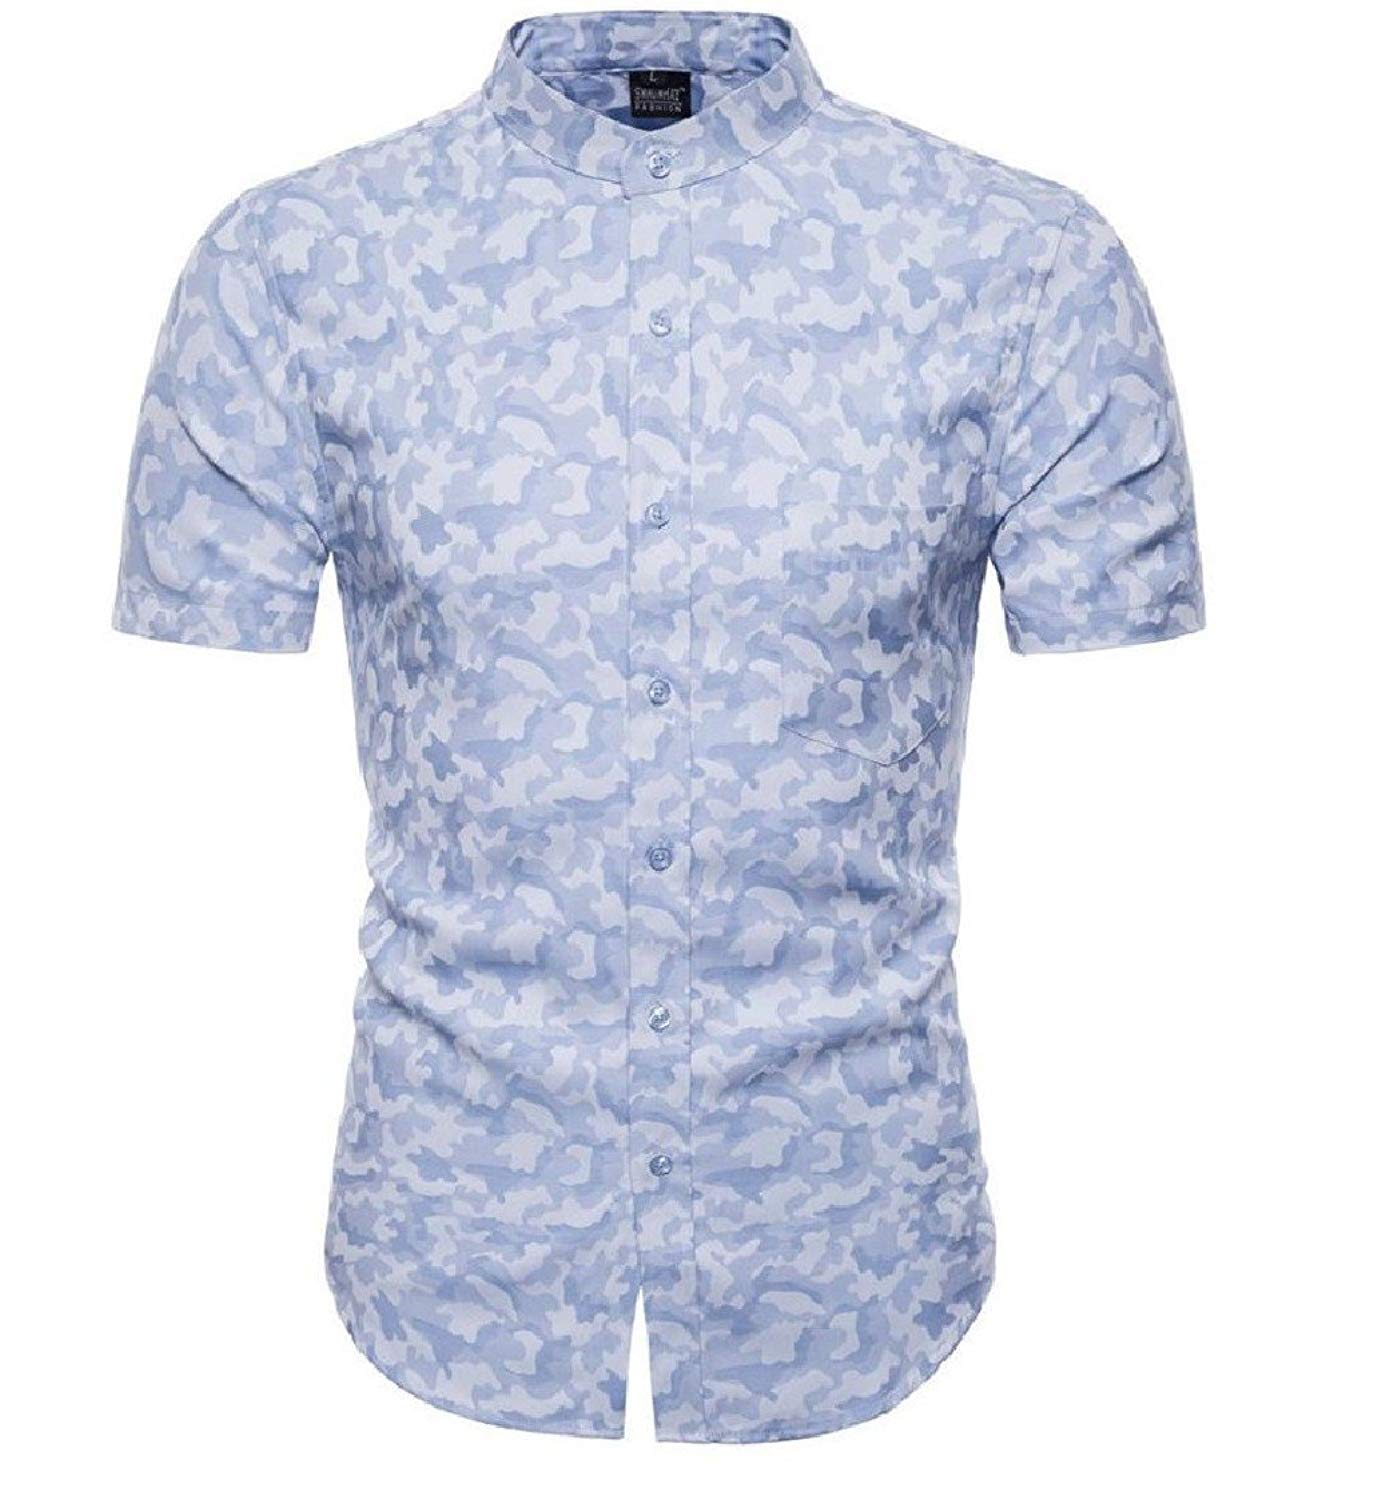 93d51dda0636 Get Quotations · Freely Men s Short Sleeves Camouflage Color Printing  Collared Dress Shirts